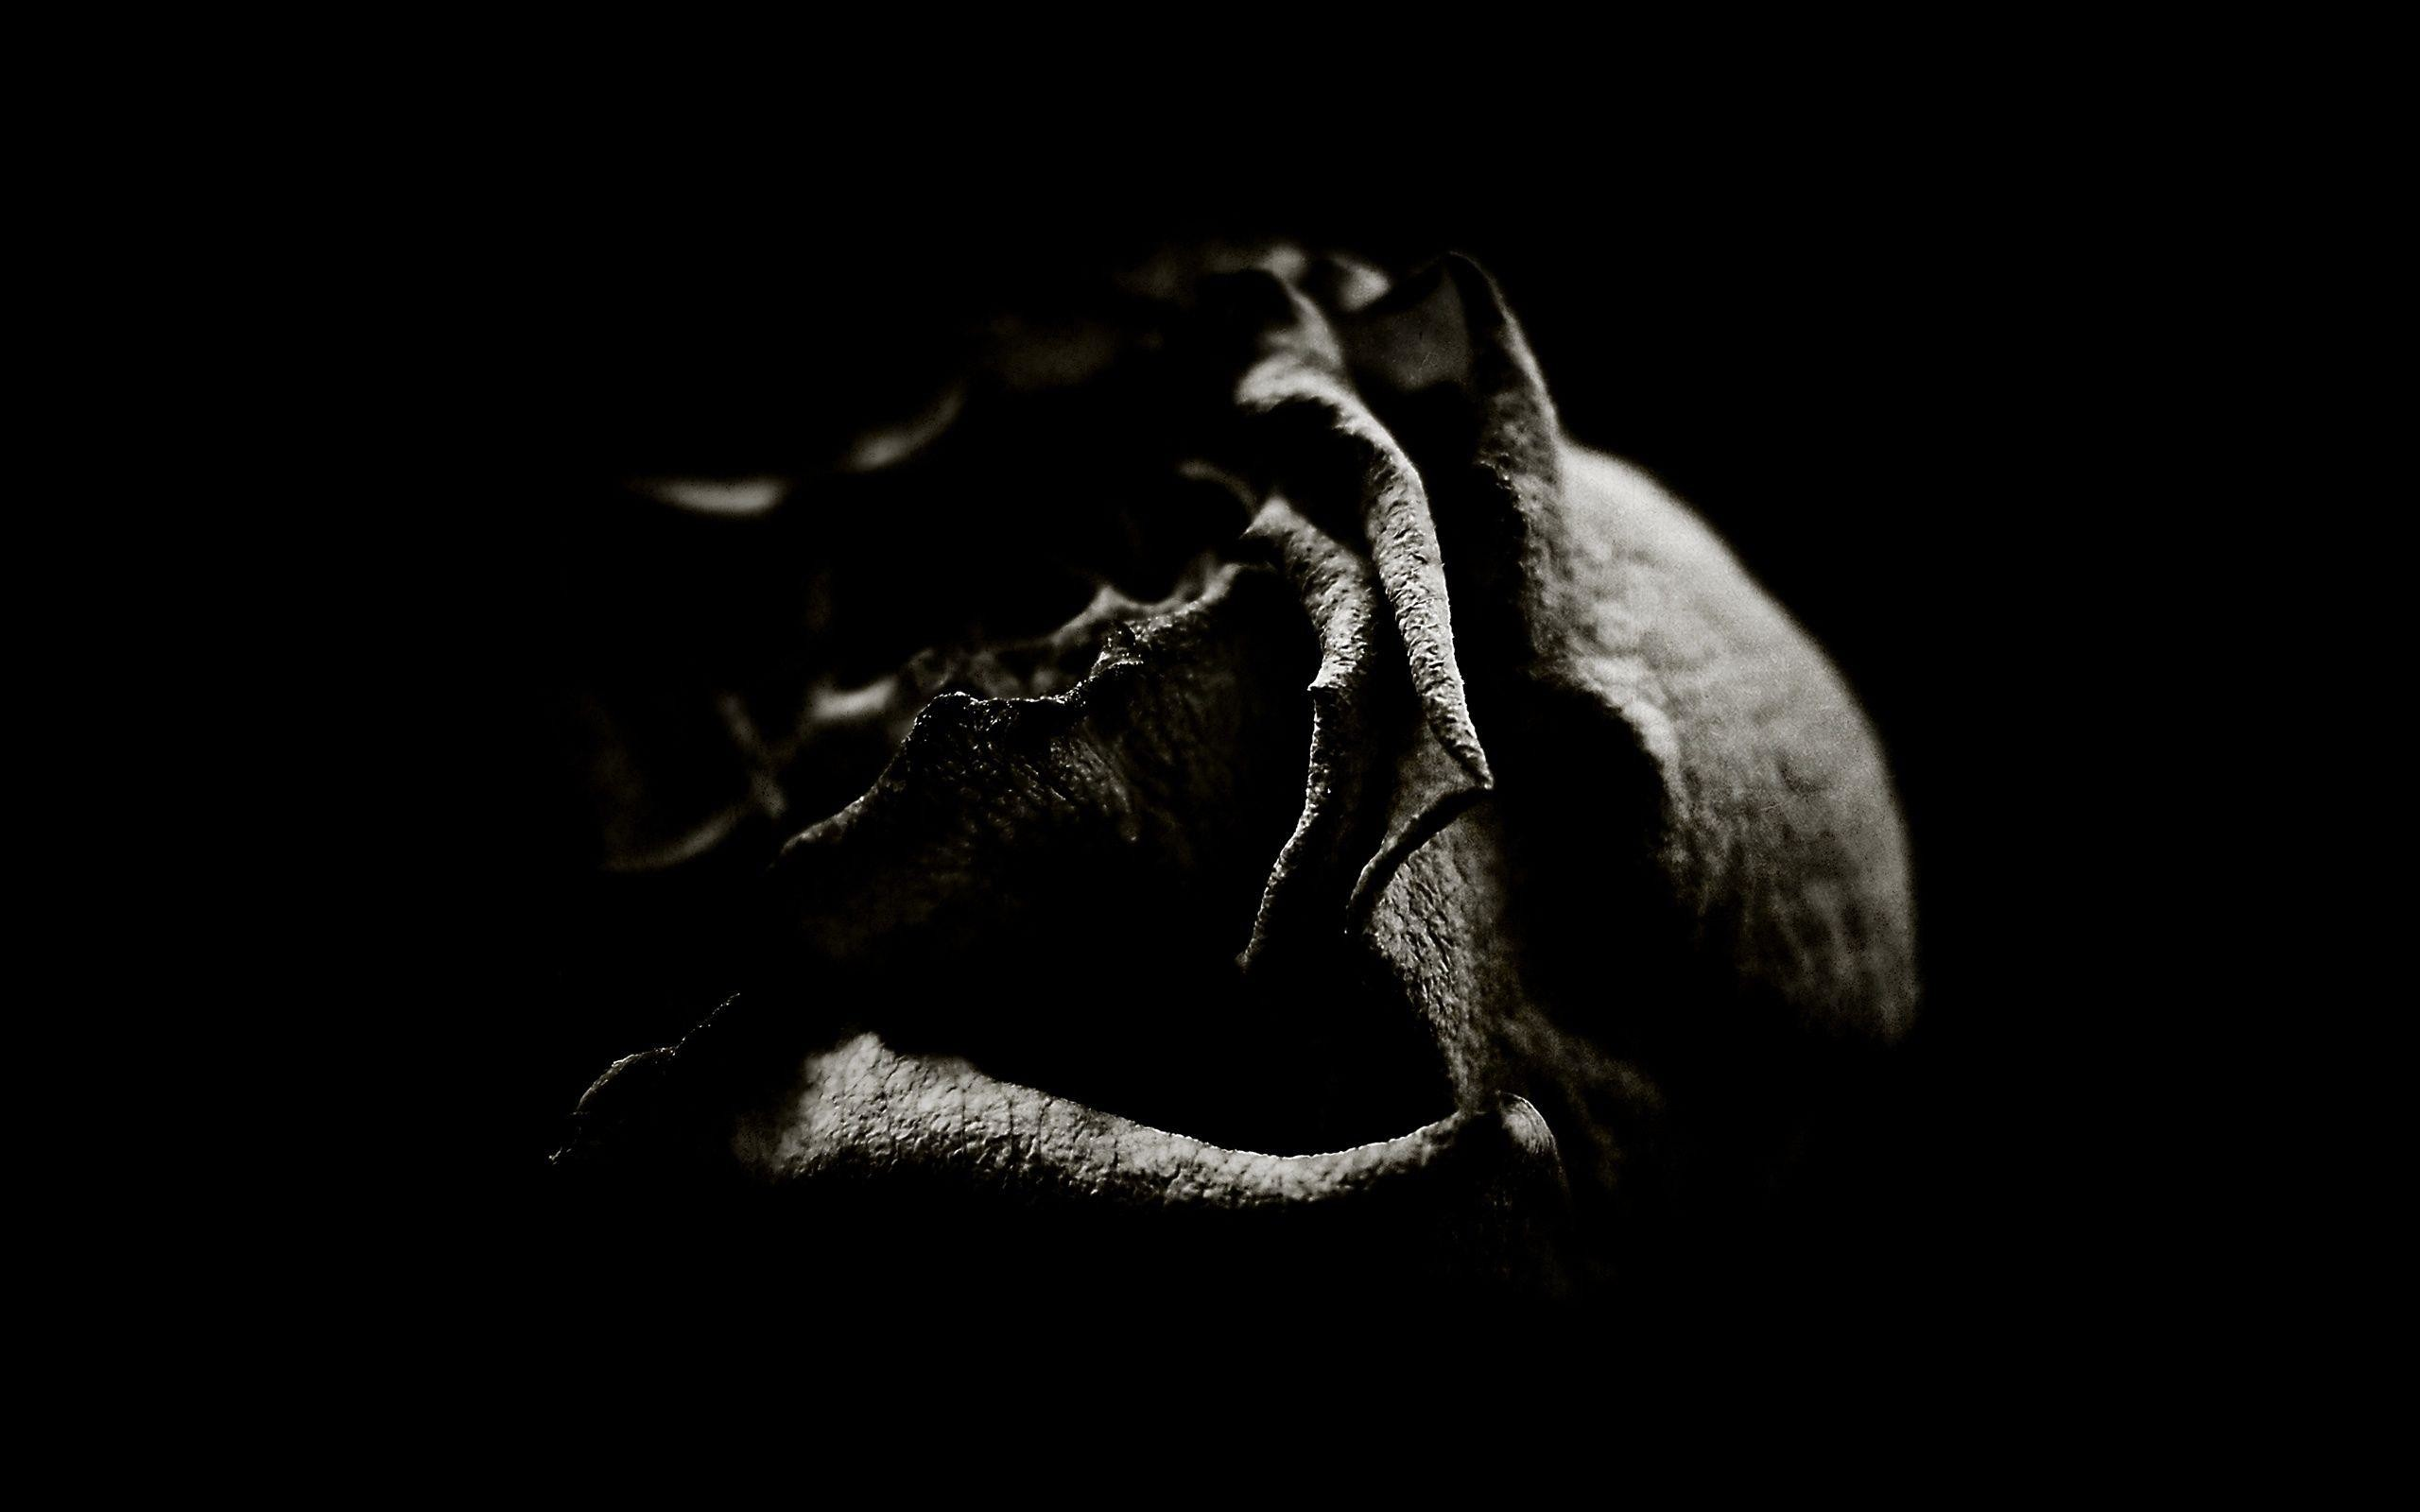 2560x1600 Wallpapers For Gothic Black Roses Wallpaper